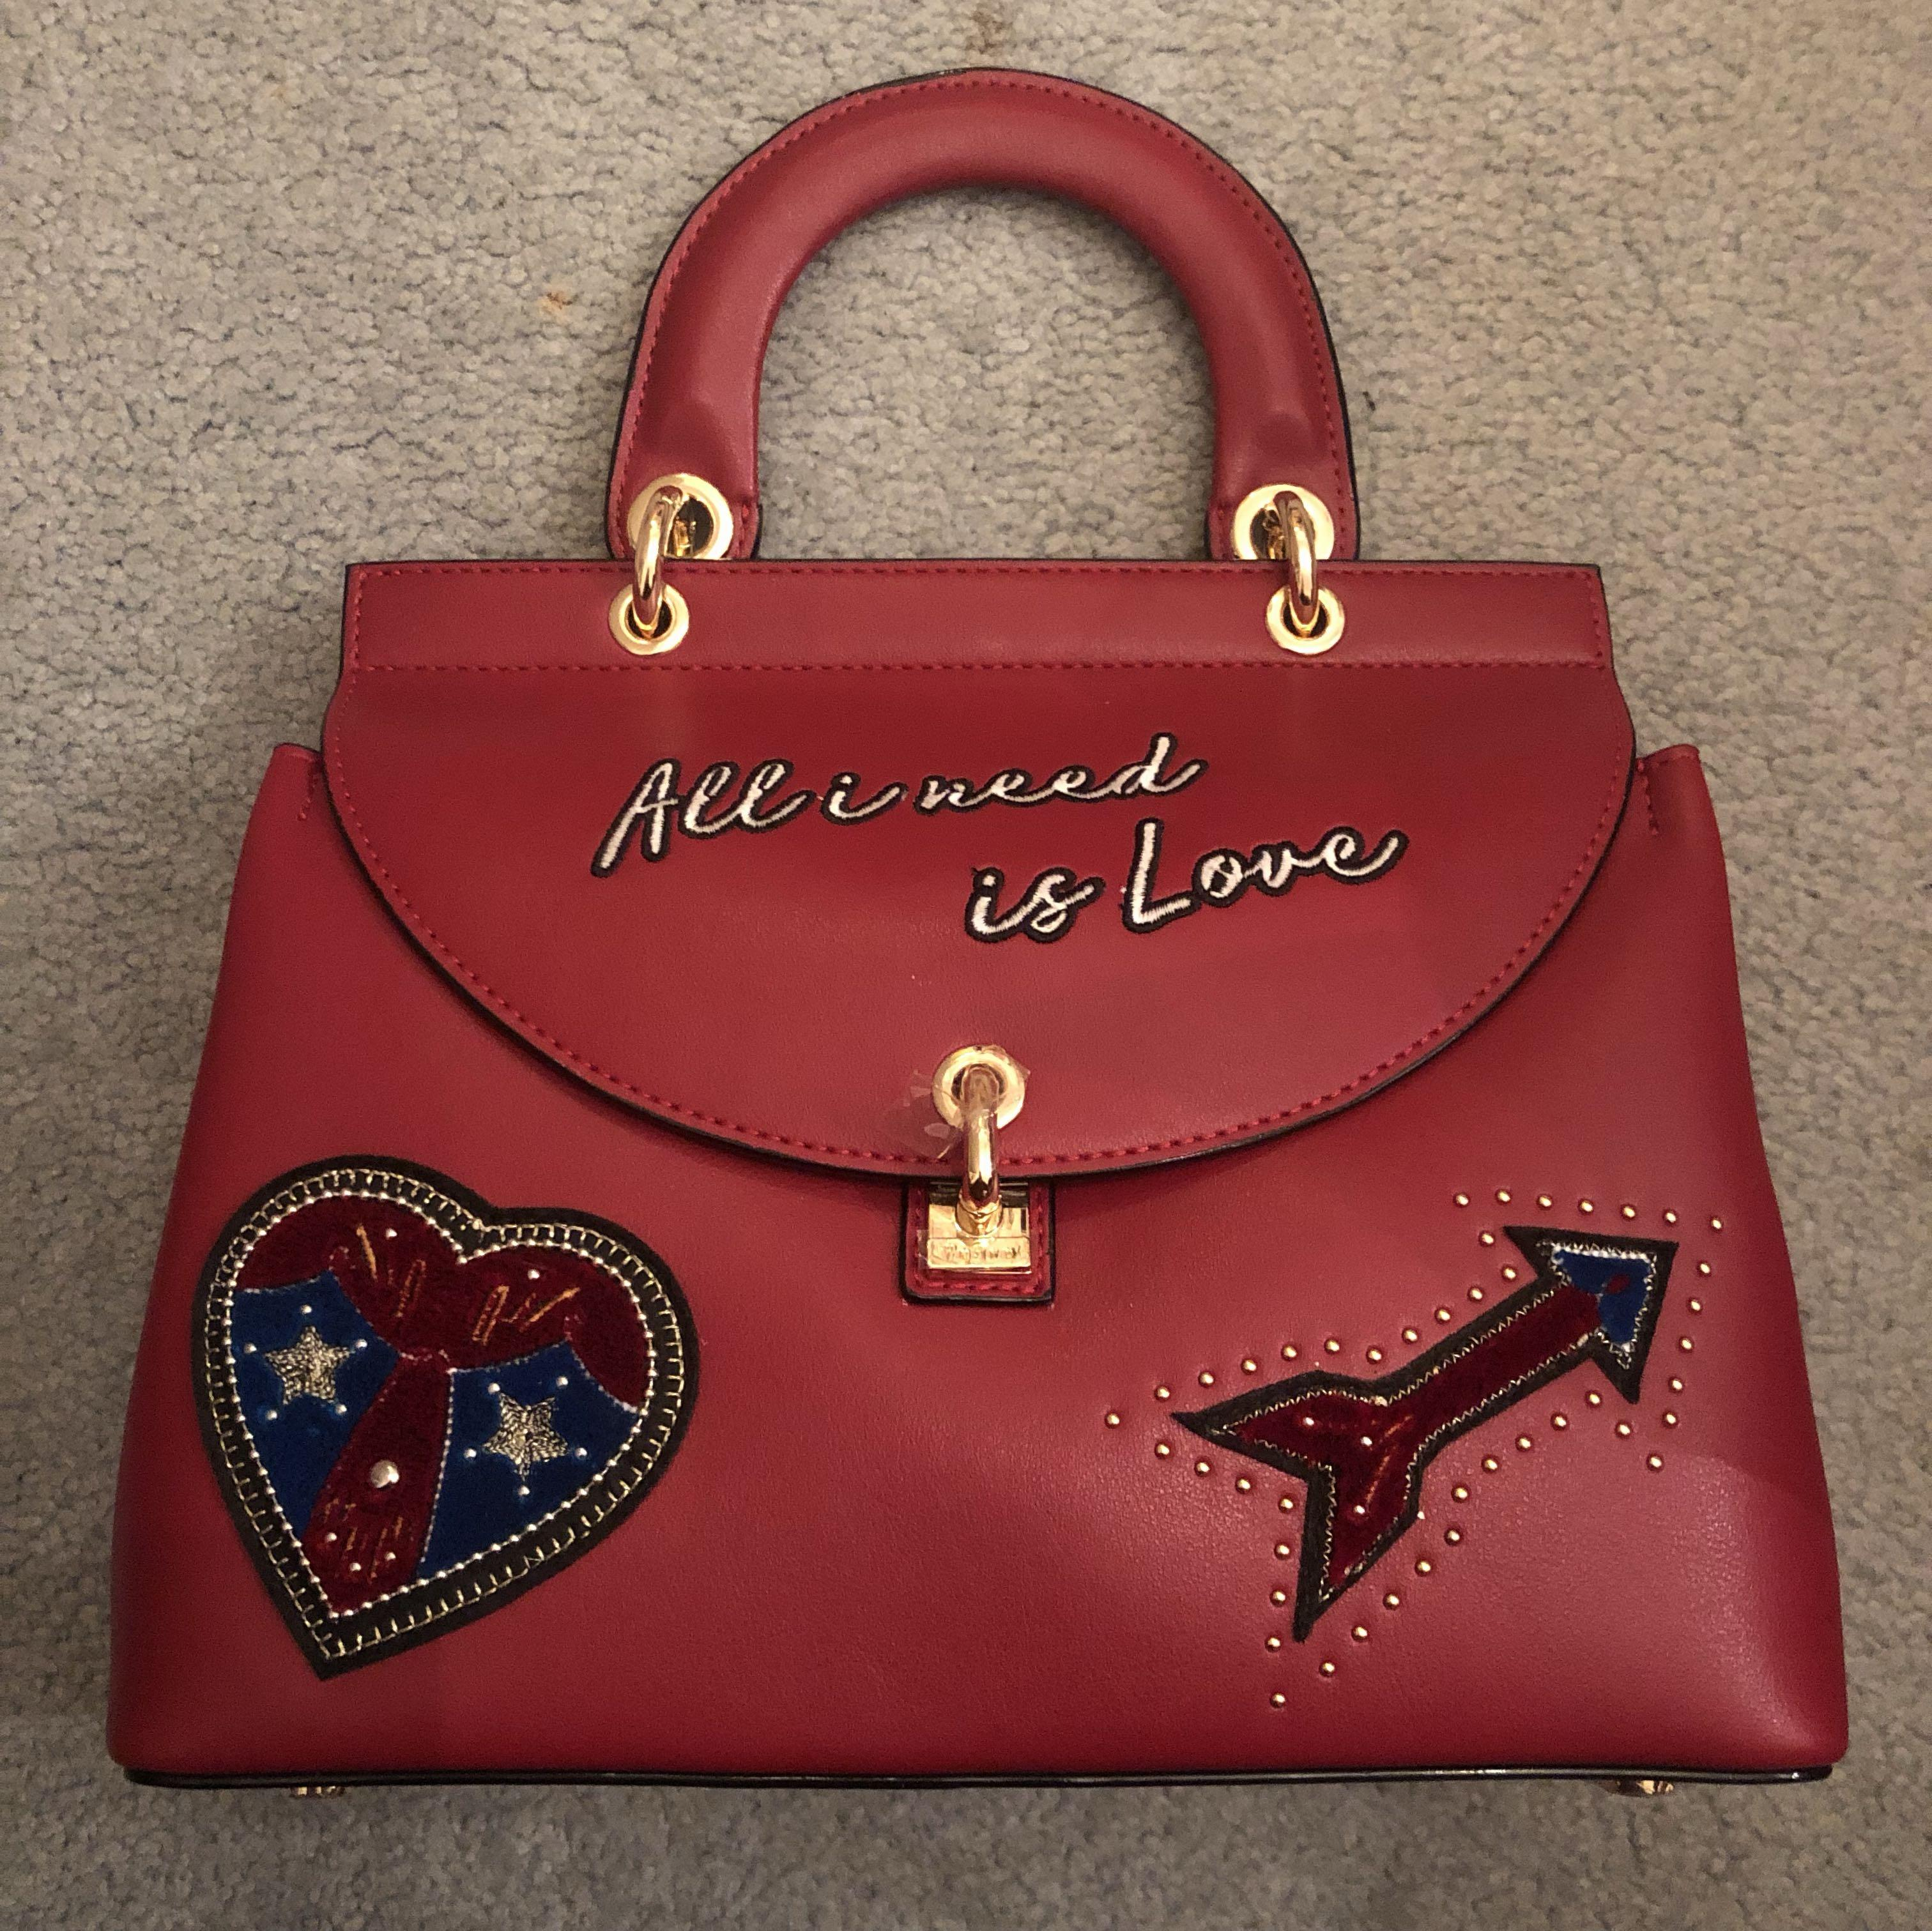 Red handbag with quote and stamps